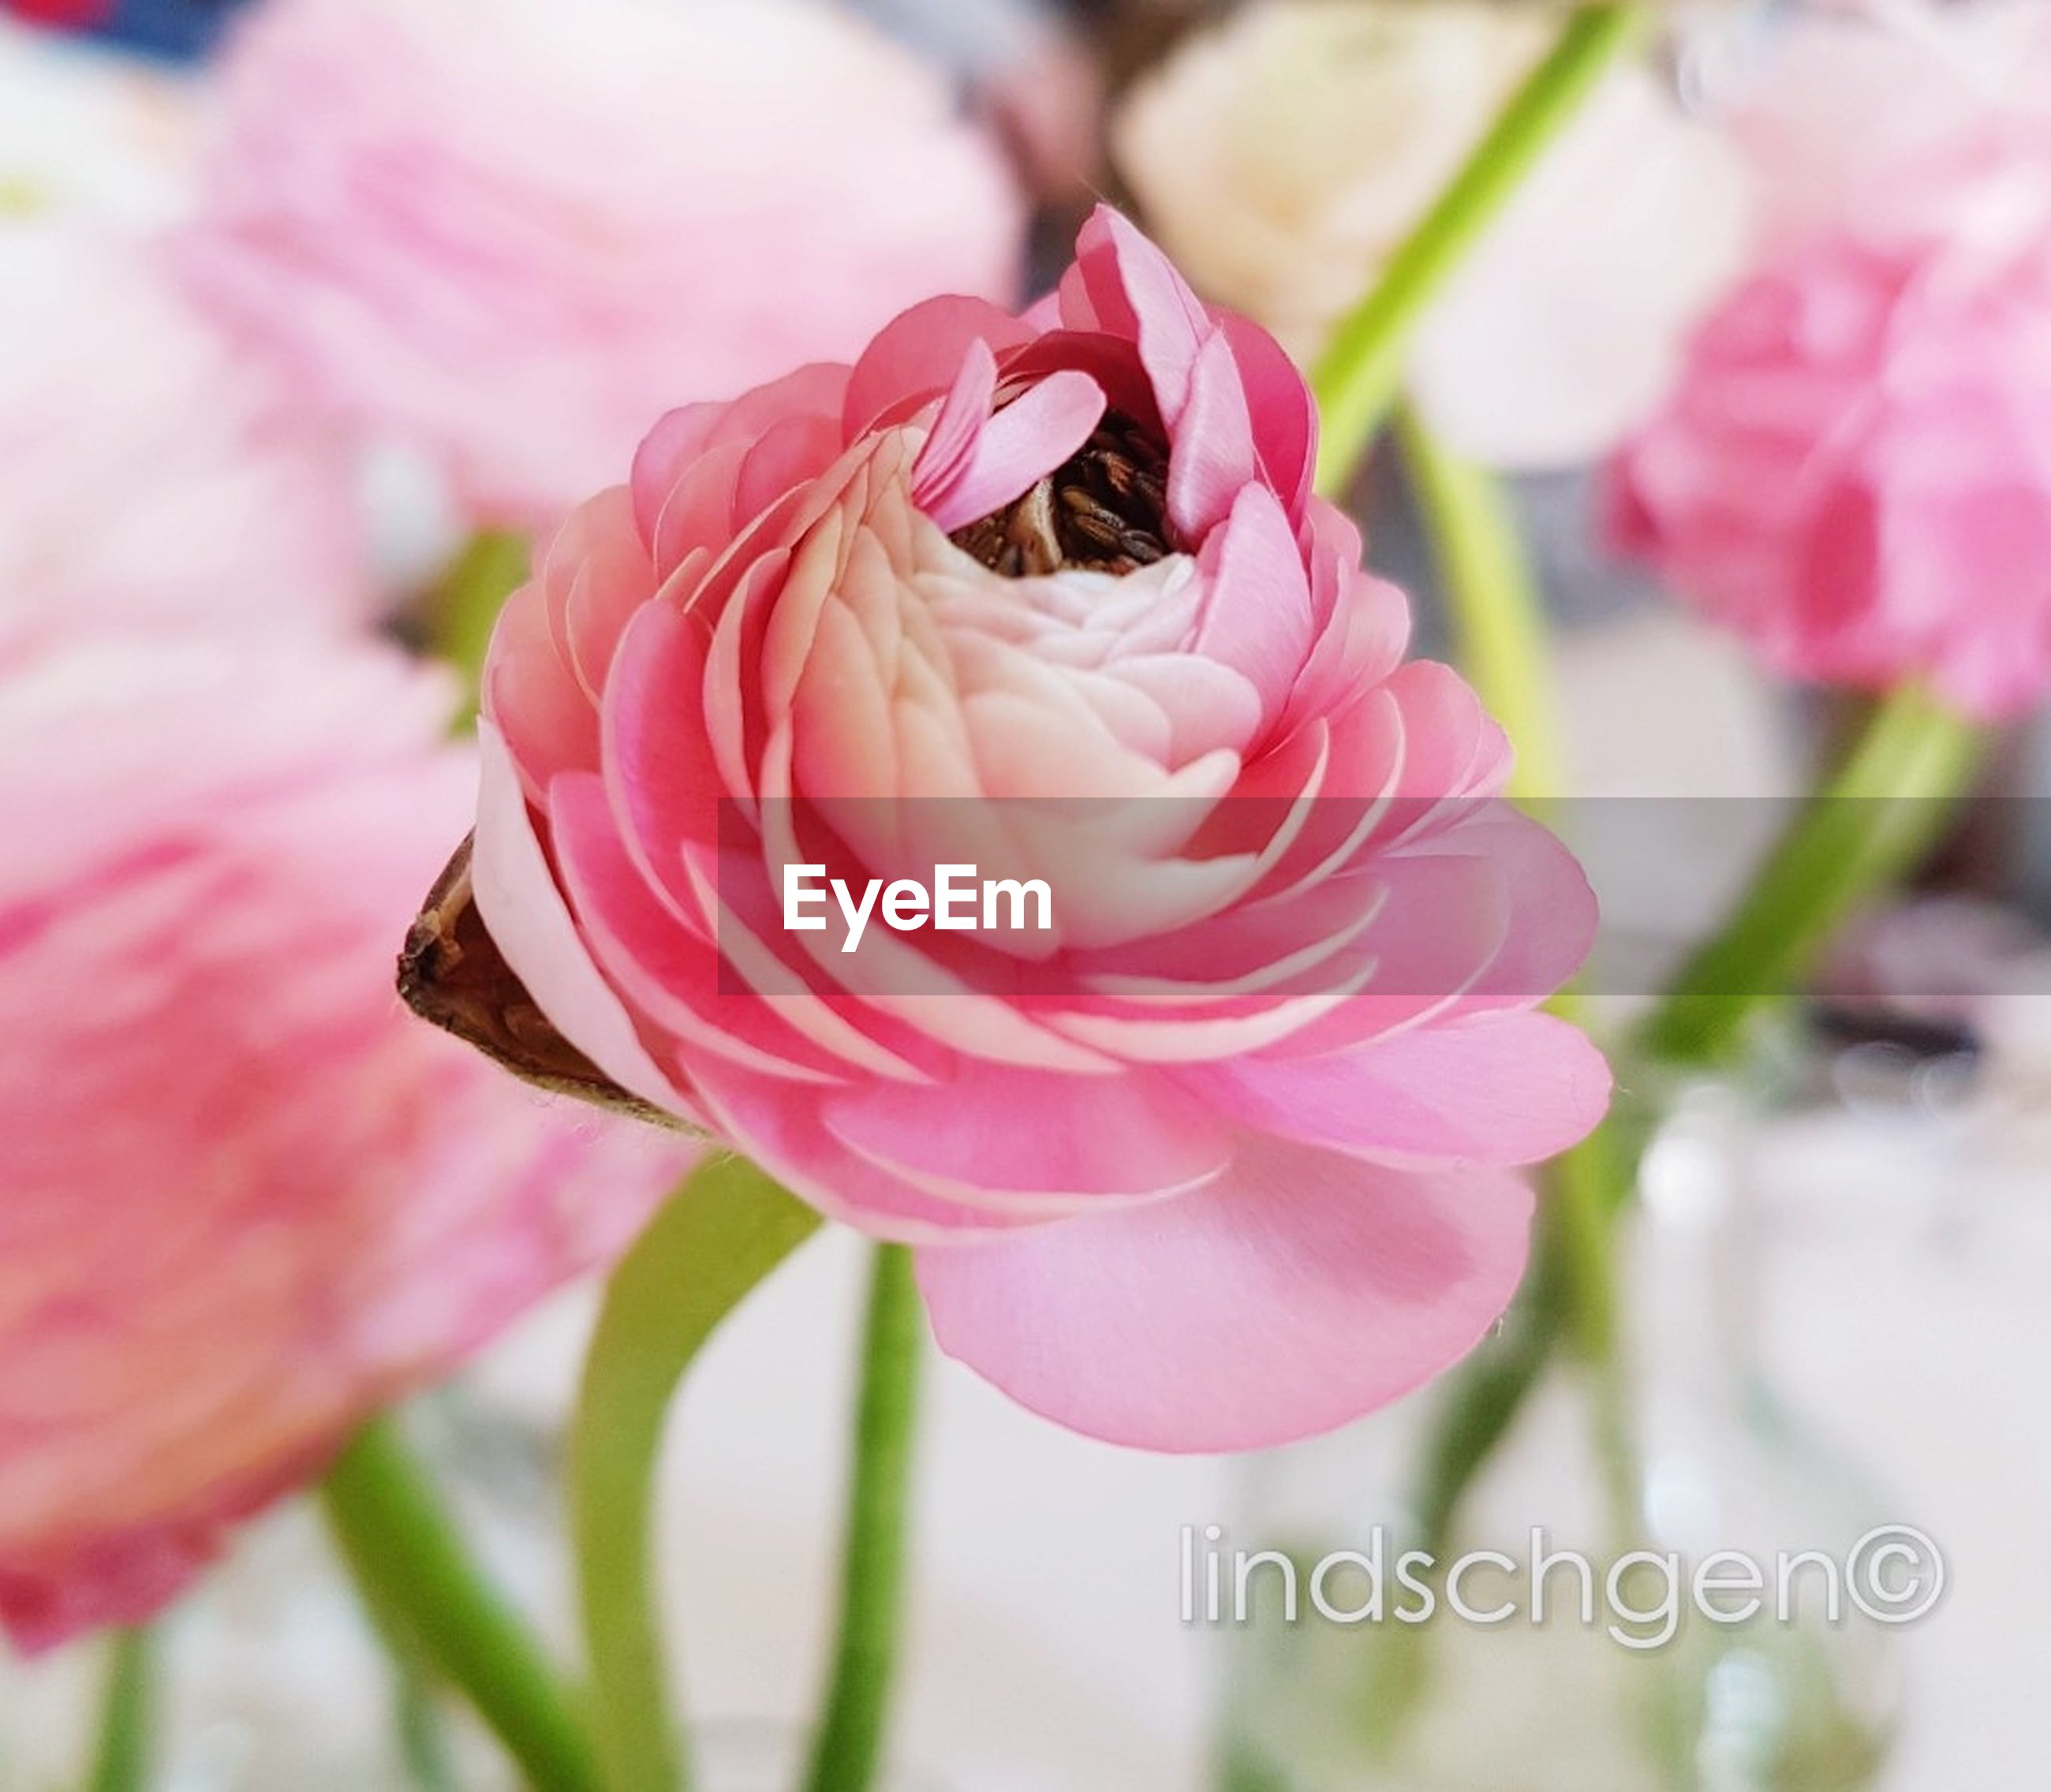 flower, flowering plant, beauty in nature, fragility, pink color, freshness, vulnerability, plant, petal, flower head, close-up, inflorescence, growth, nature, focus on foreground, no people, insect, invertebrate, animal wildlife, rose, pollination